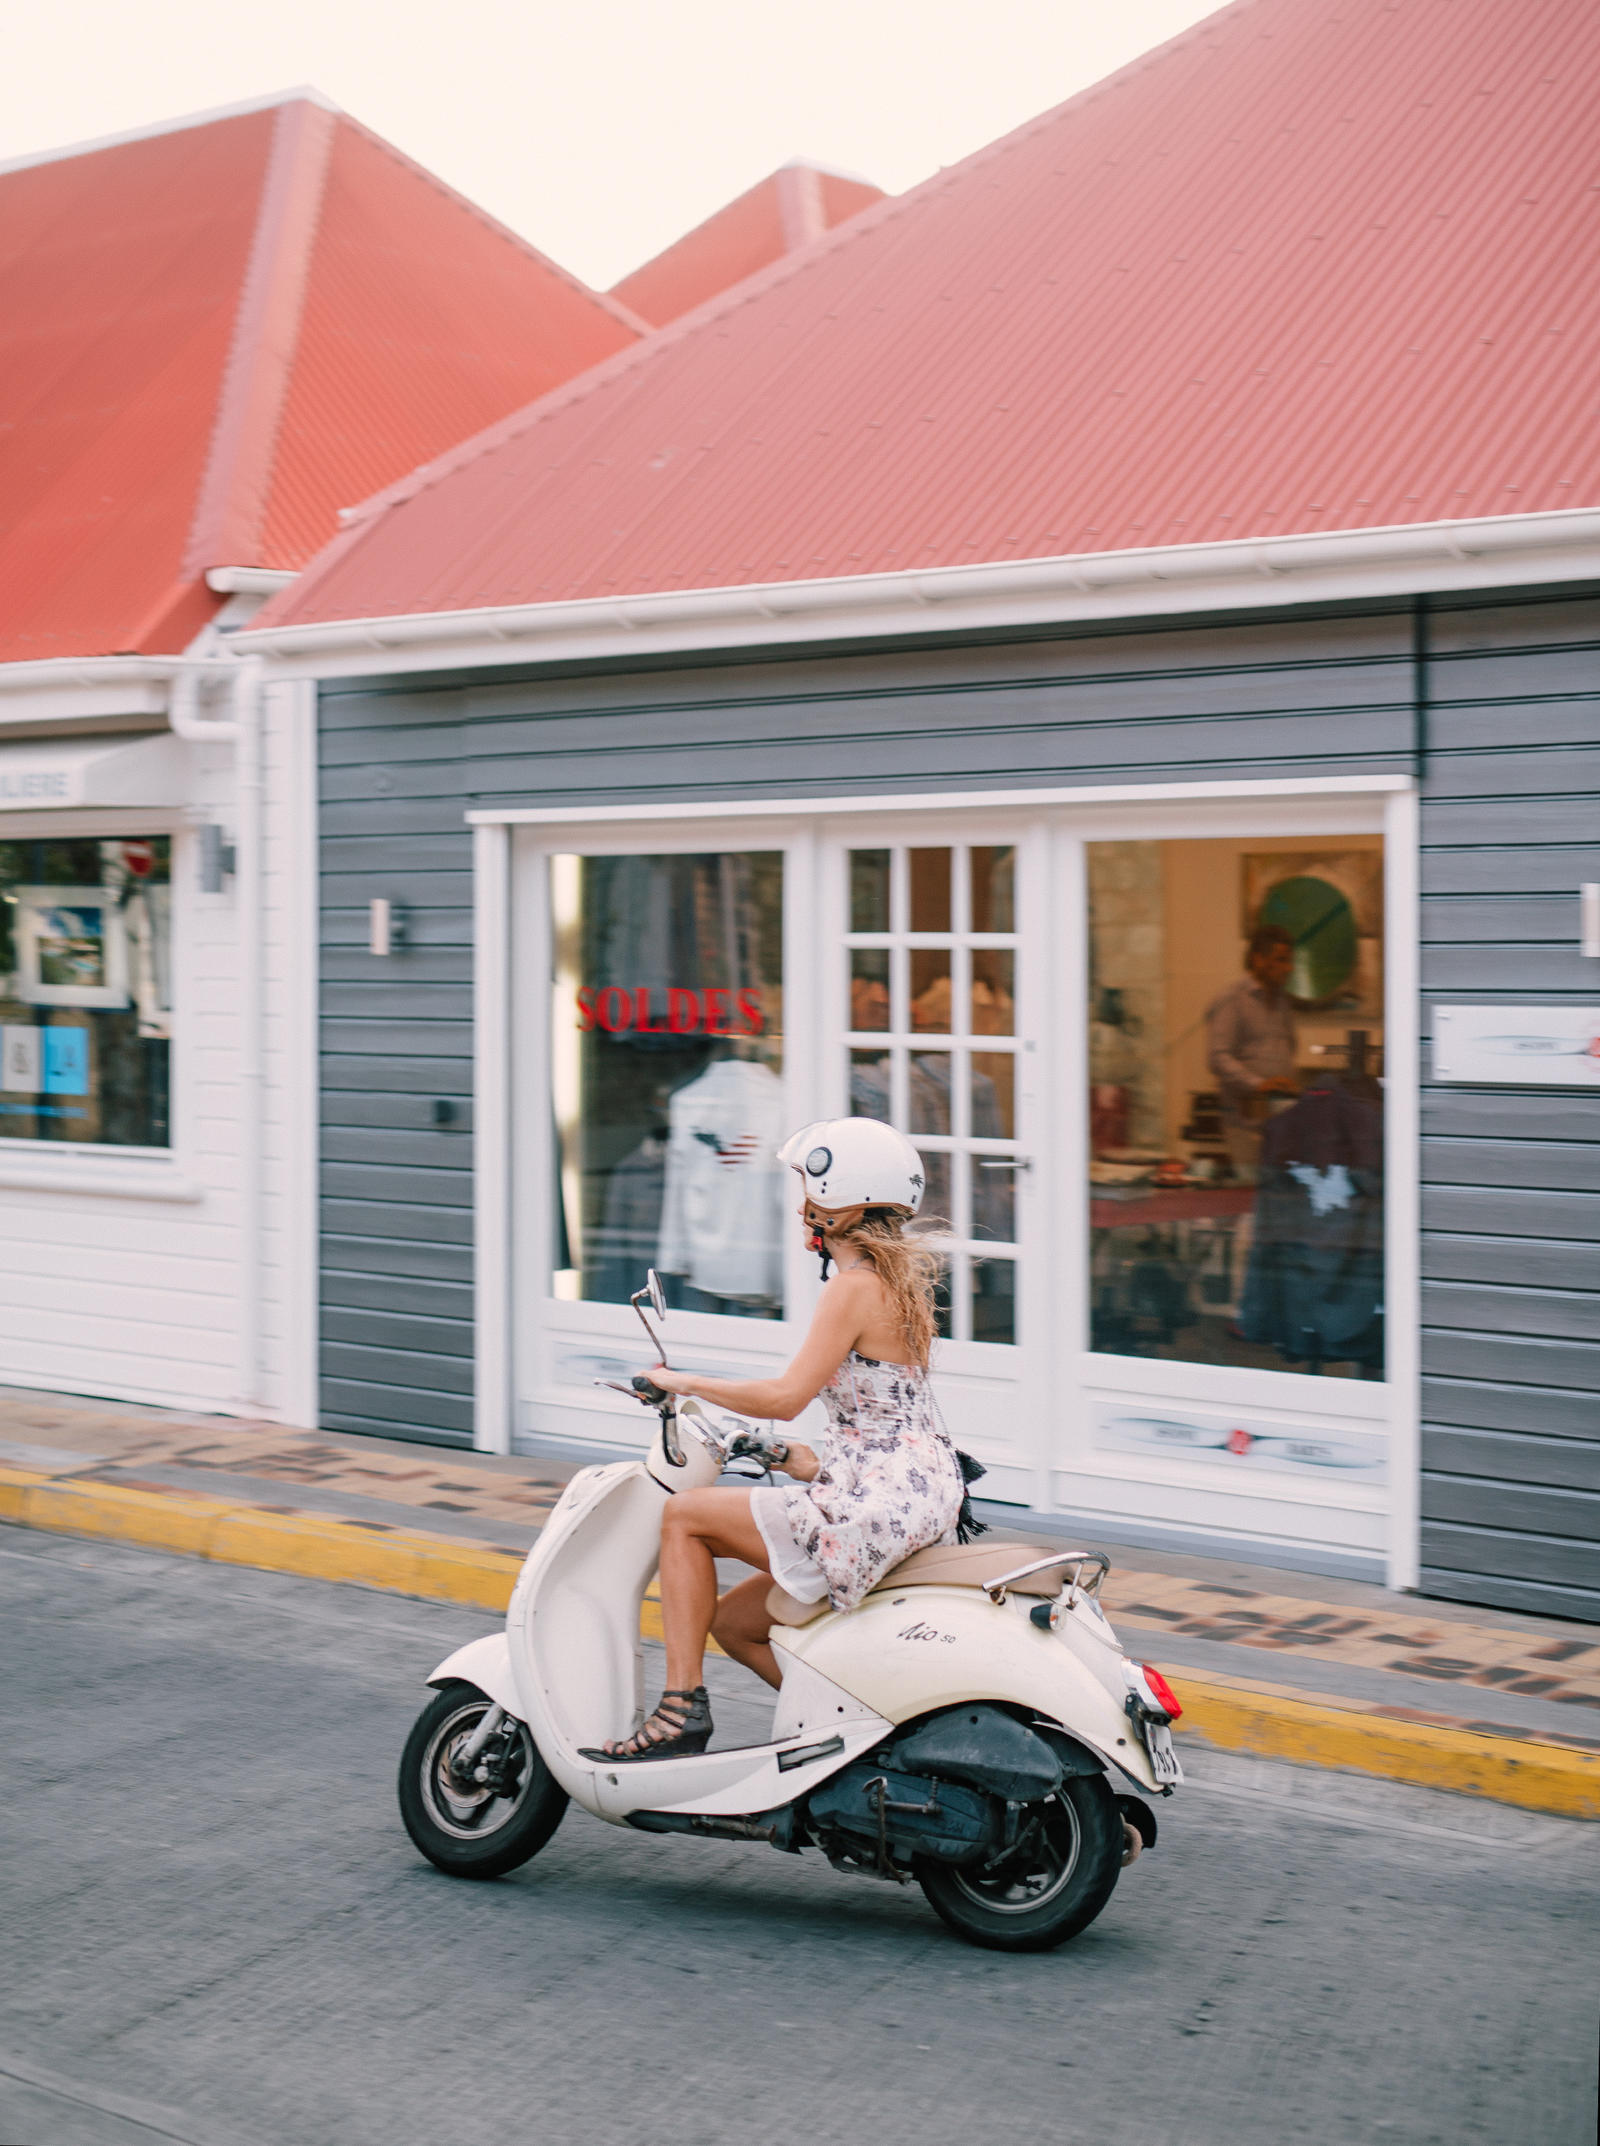 Lifestyle Photography | Atlanta, GA | A woman rides a Vespa scooter down the street.